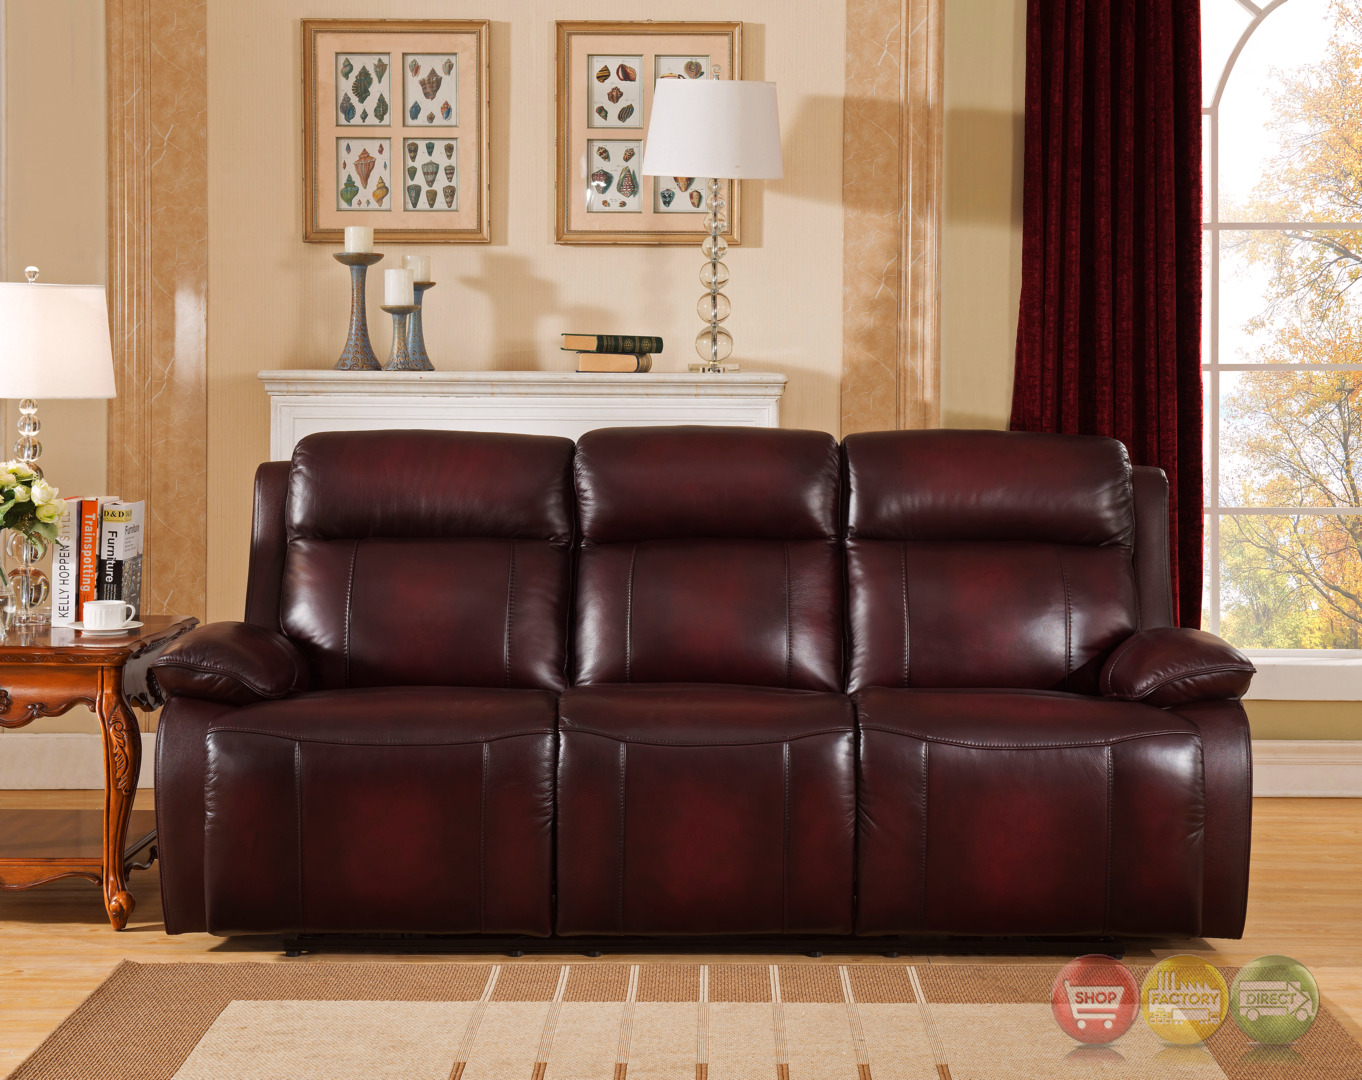 Faraday genuine leather power recline sofa in deep red for Deep red sectional sofa